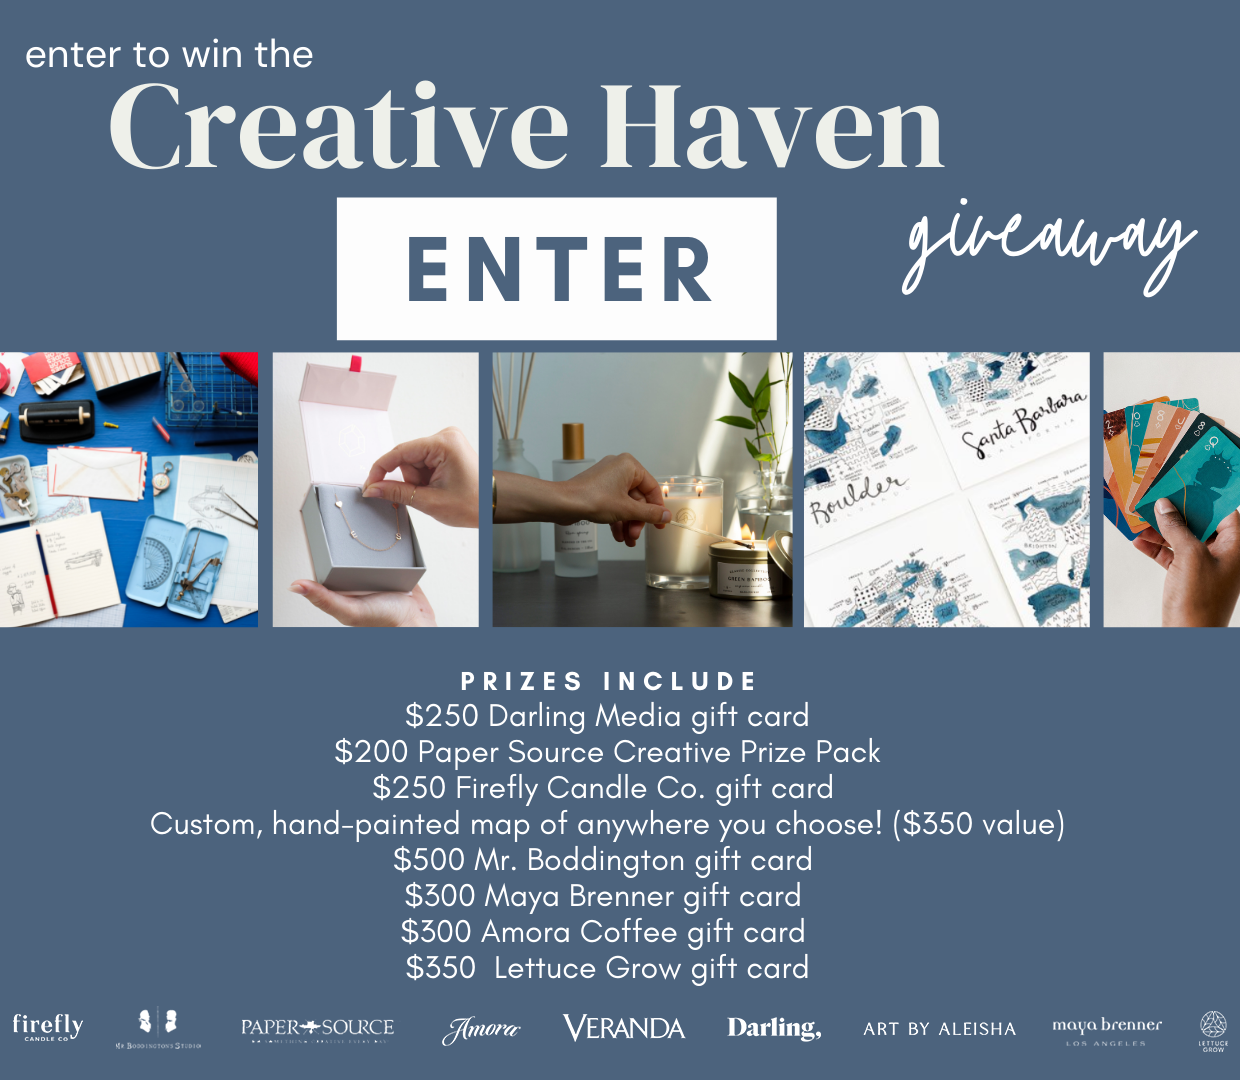 Enter for a chance to win: A $250 Darling Media gift card, a $200 Paper Source Creative Prize Pack, a $250 Firefly Candle Co. gift card; A custom, hand-painted map of anywhere you choose! ($350 value), a $500 Mr. Boddington gift card, a $300 Maya Brenner gift card, a $300 Amora Coffee gift card, and a $350 Lettuce Grow gift card.